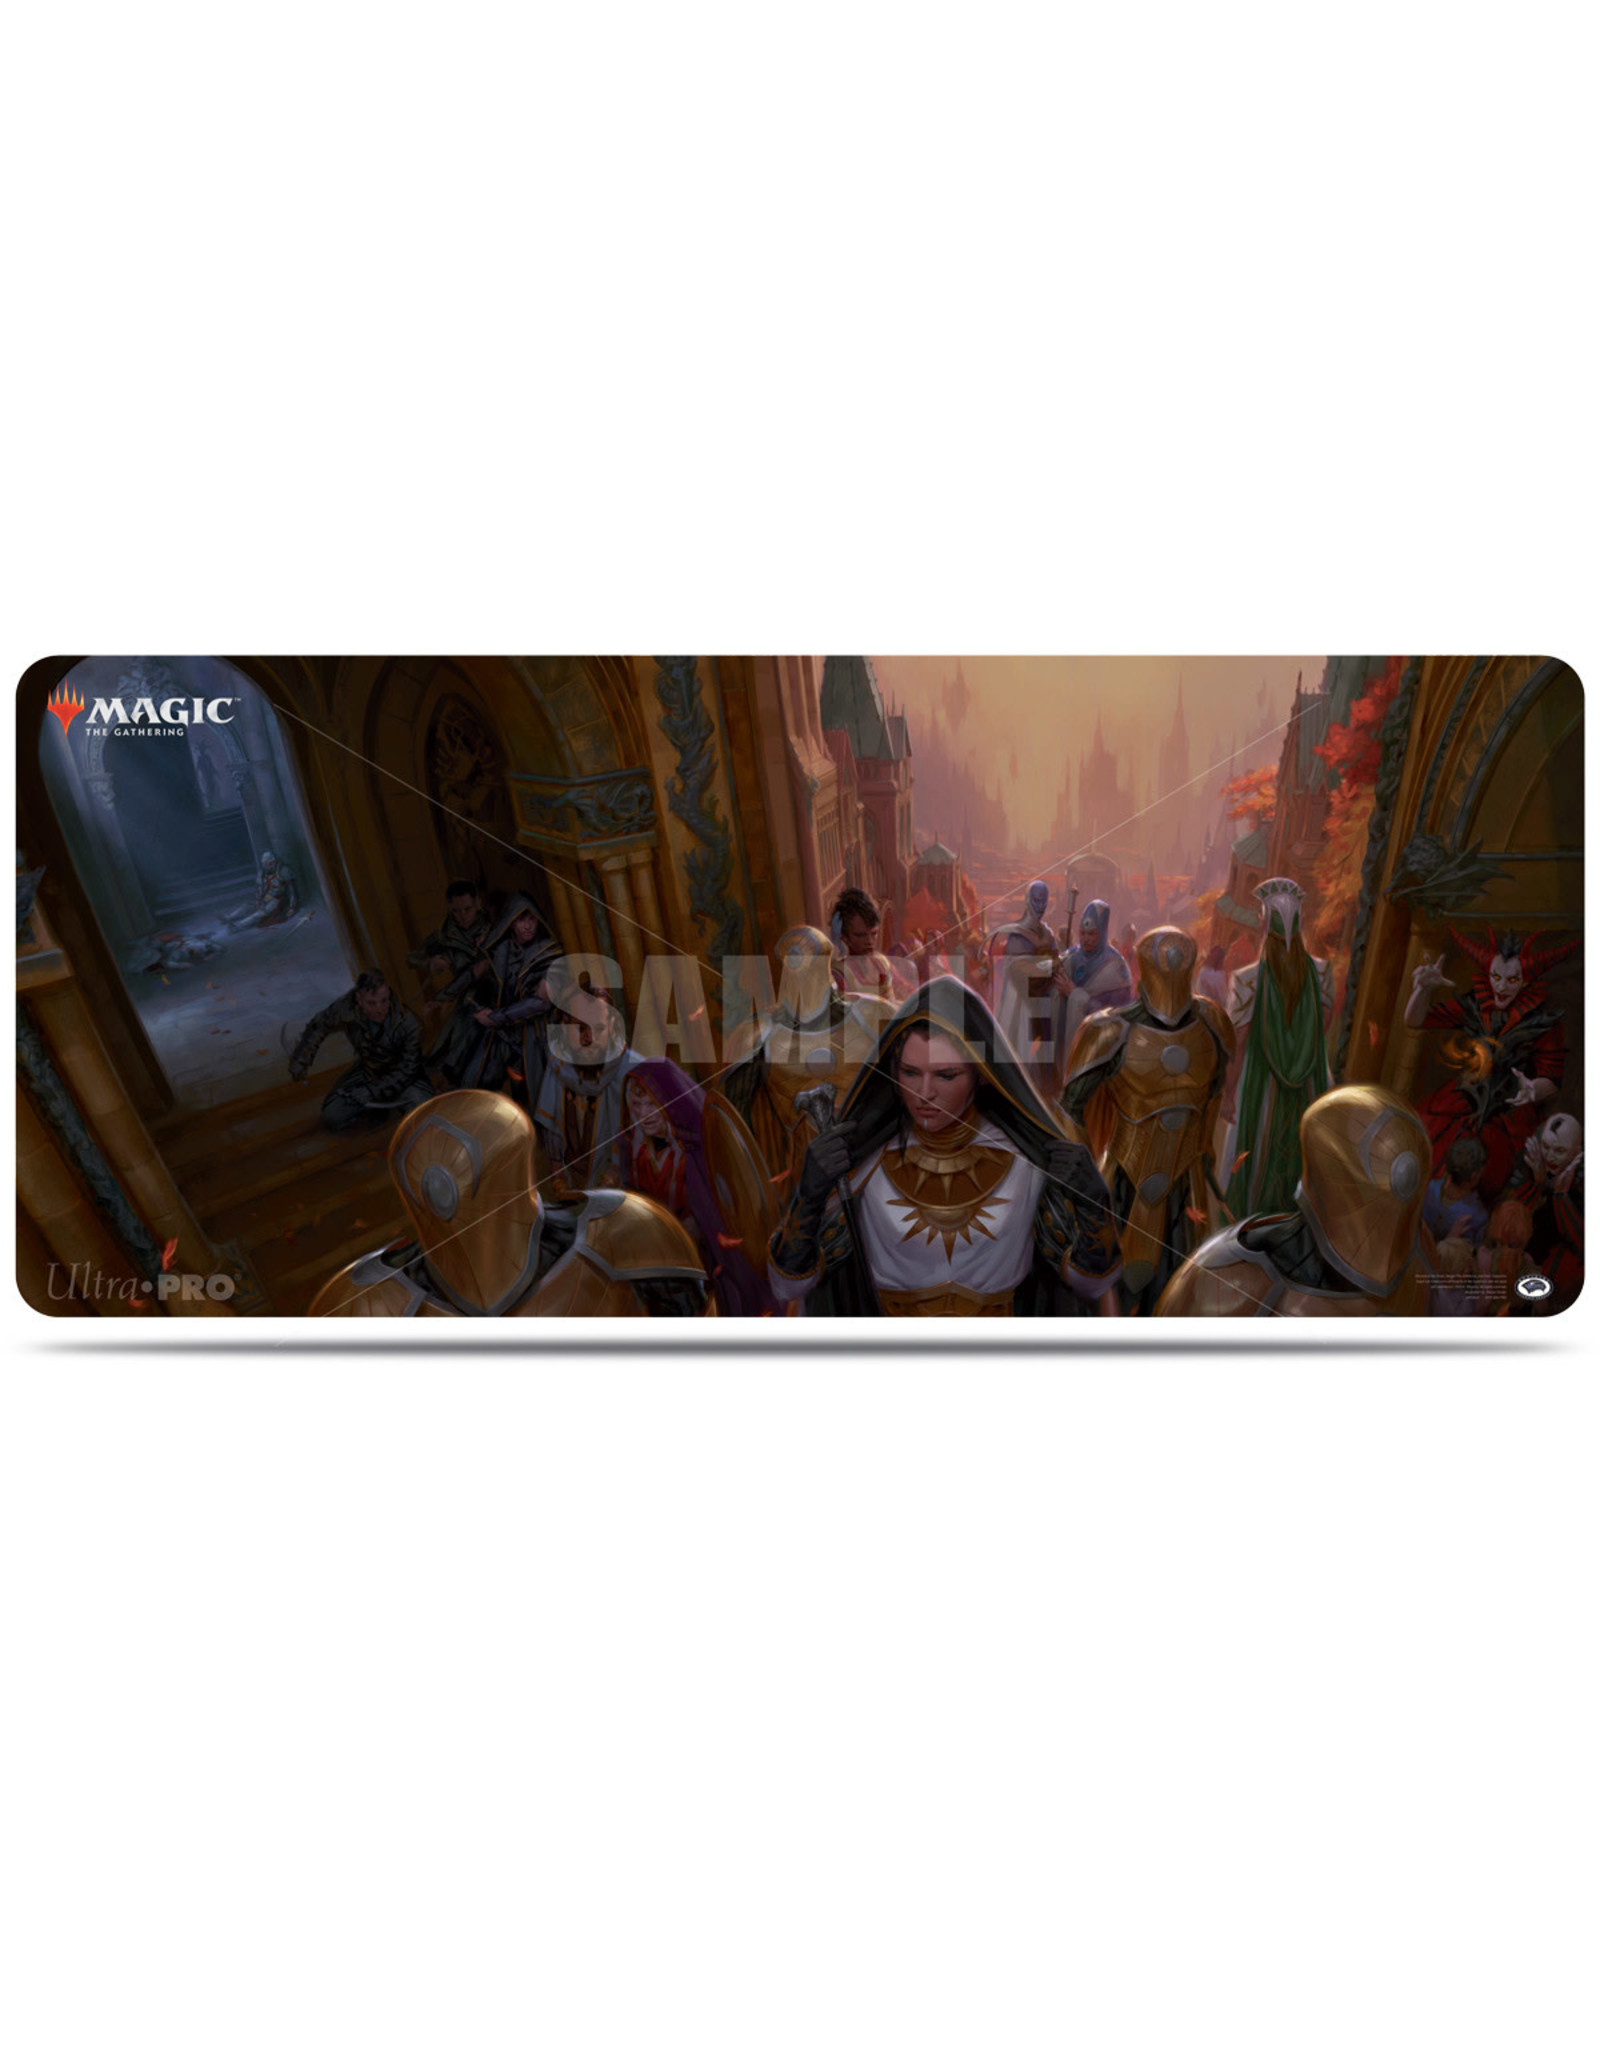 Ultra Pro Guilds of Ravnica 6' Table Playmat for Magic